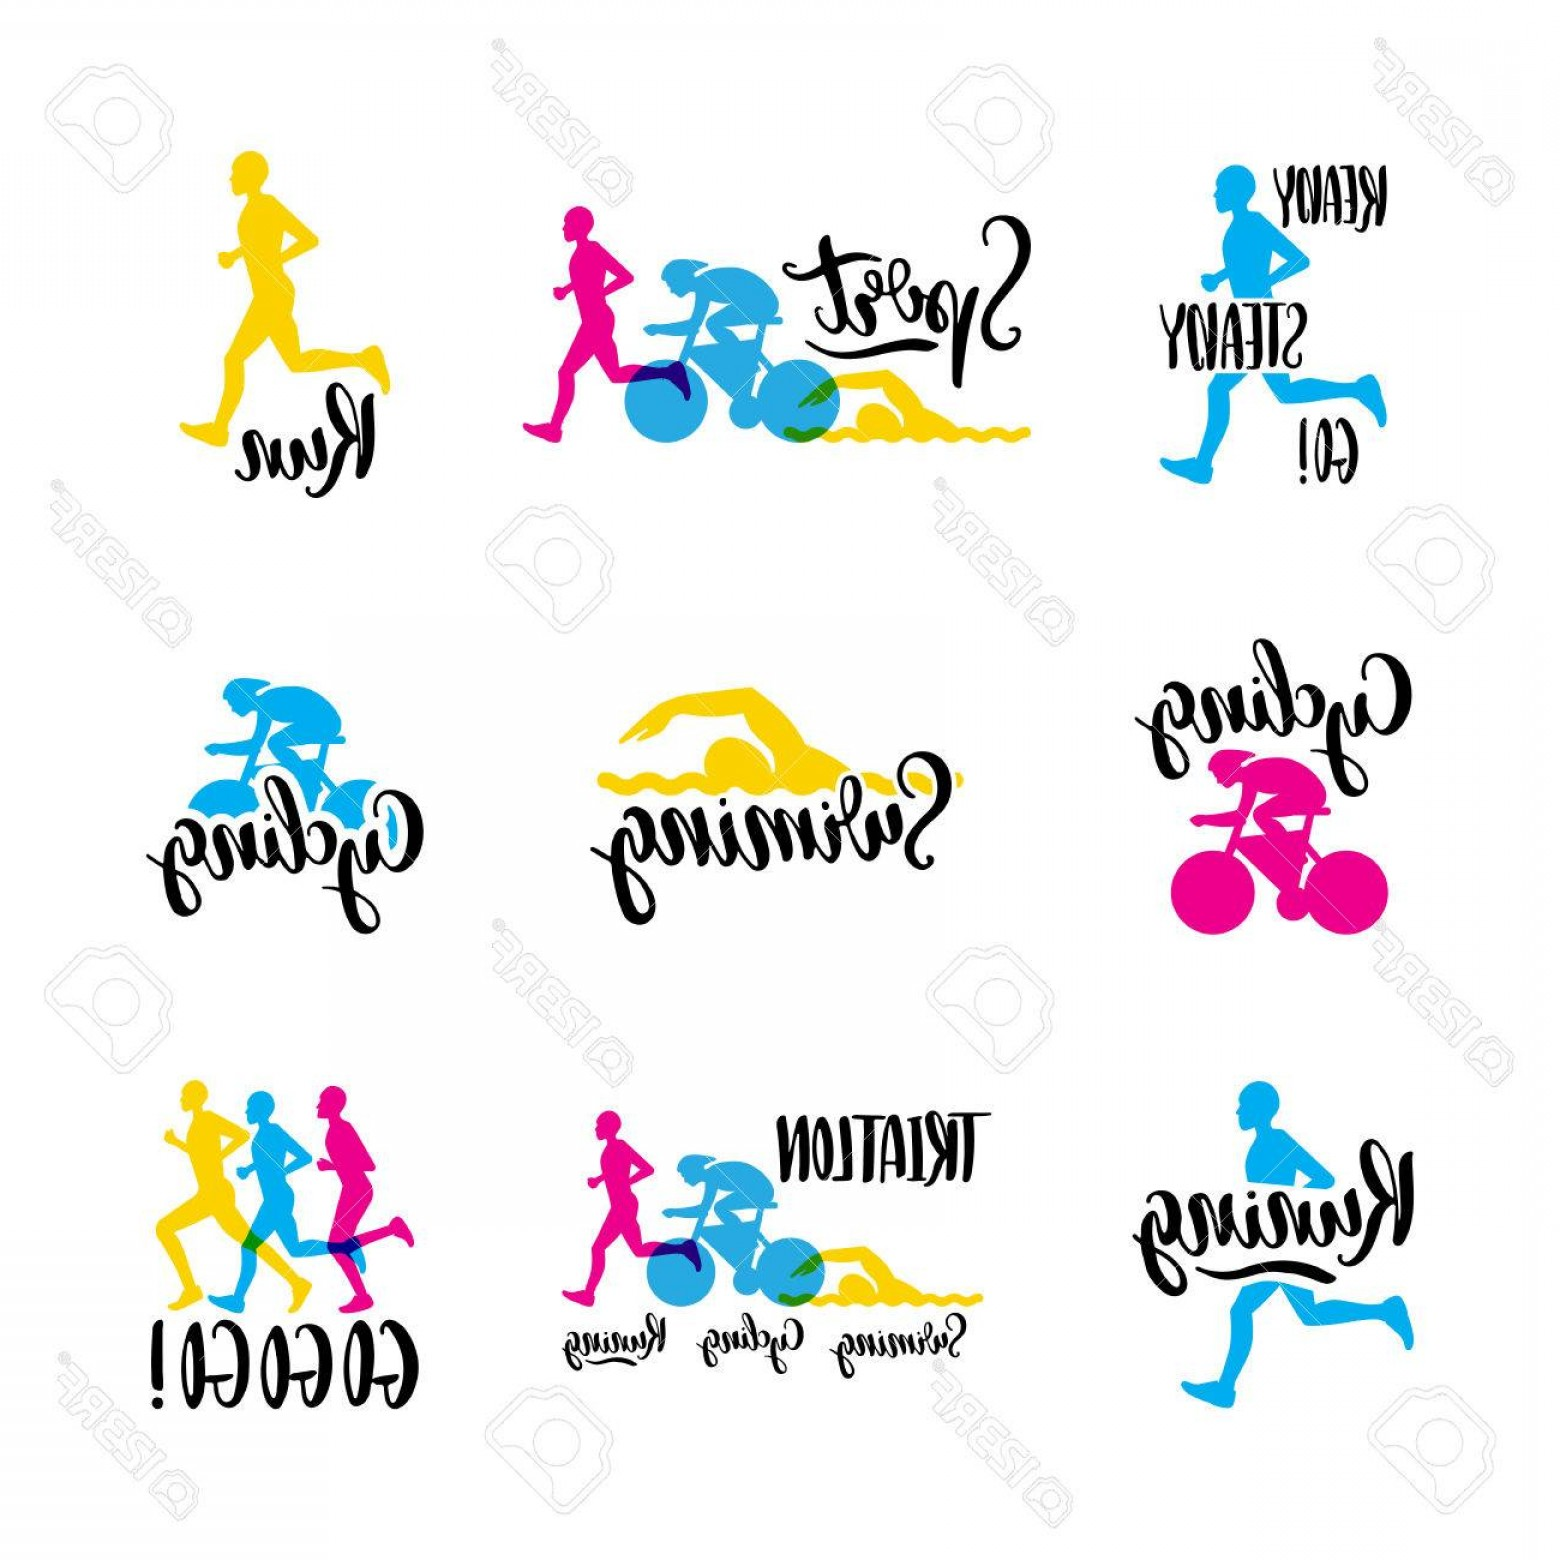 Sports Logos Vector Art: Photostock Vector Sports Logo With Colored Letters Hand Written On The Topic Of Cycling Swimming Running Triathlon